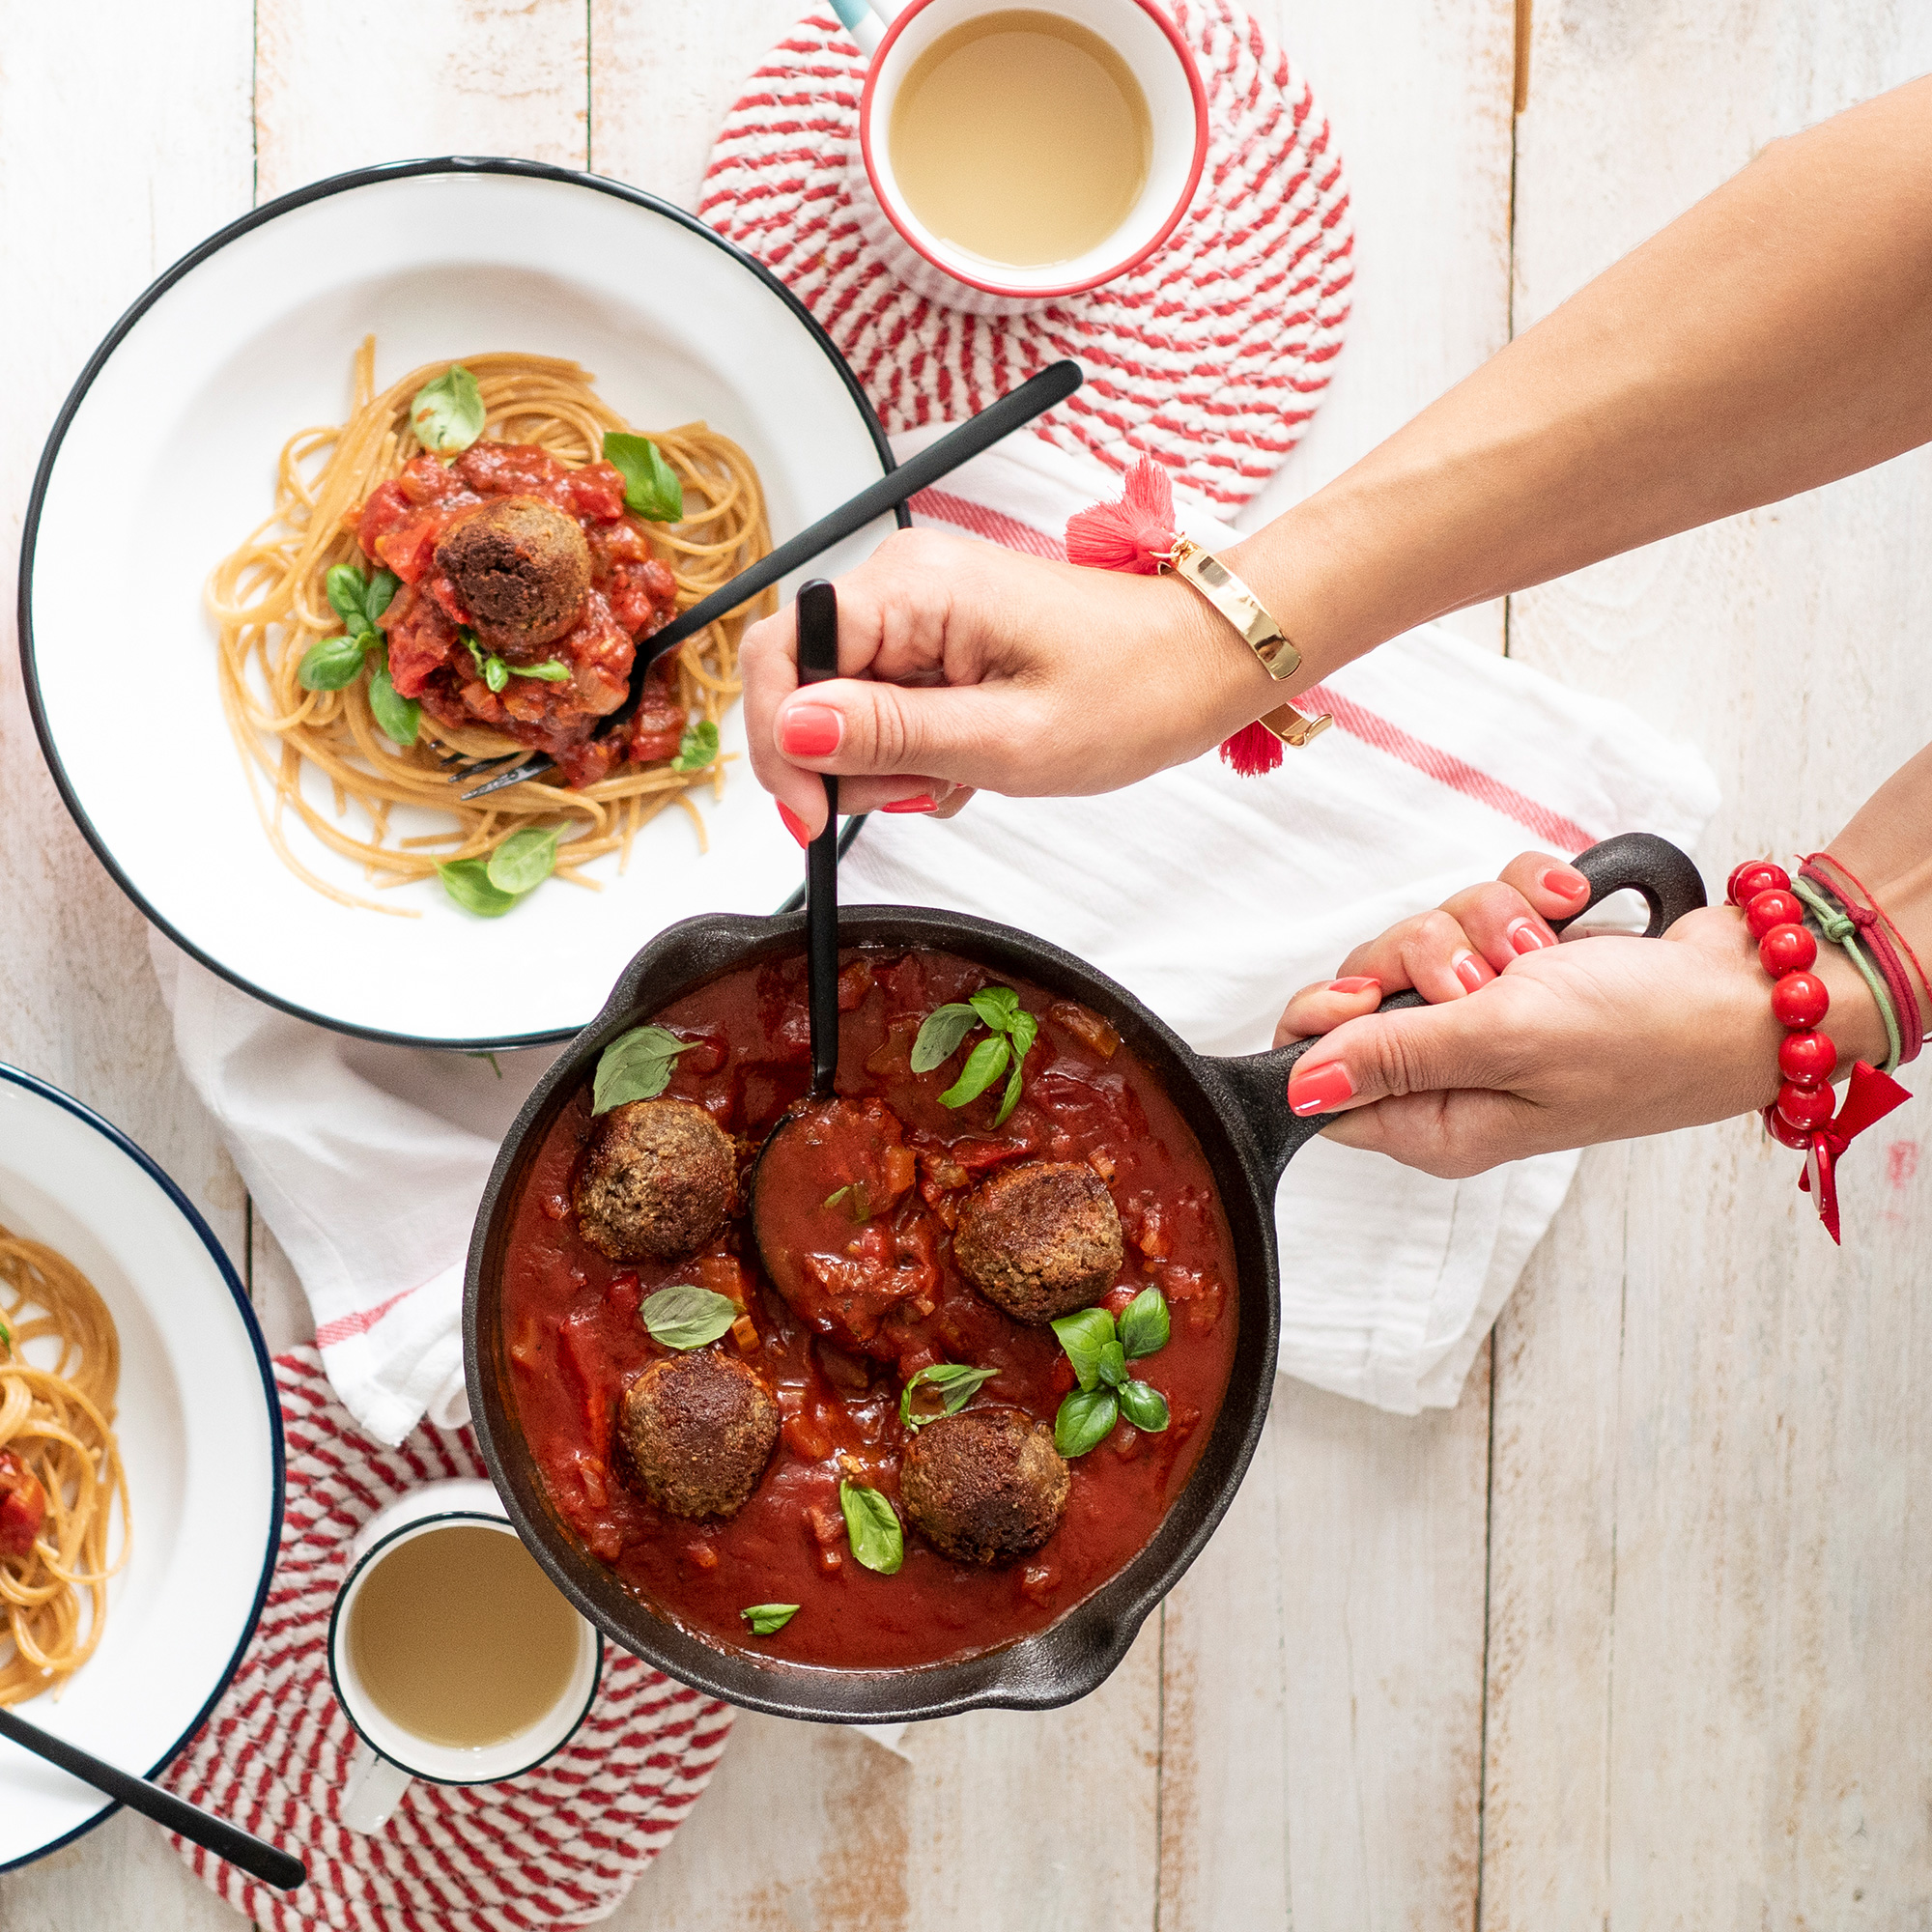 A woman's hands cooking spaghetti and meatballs in a skillet